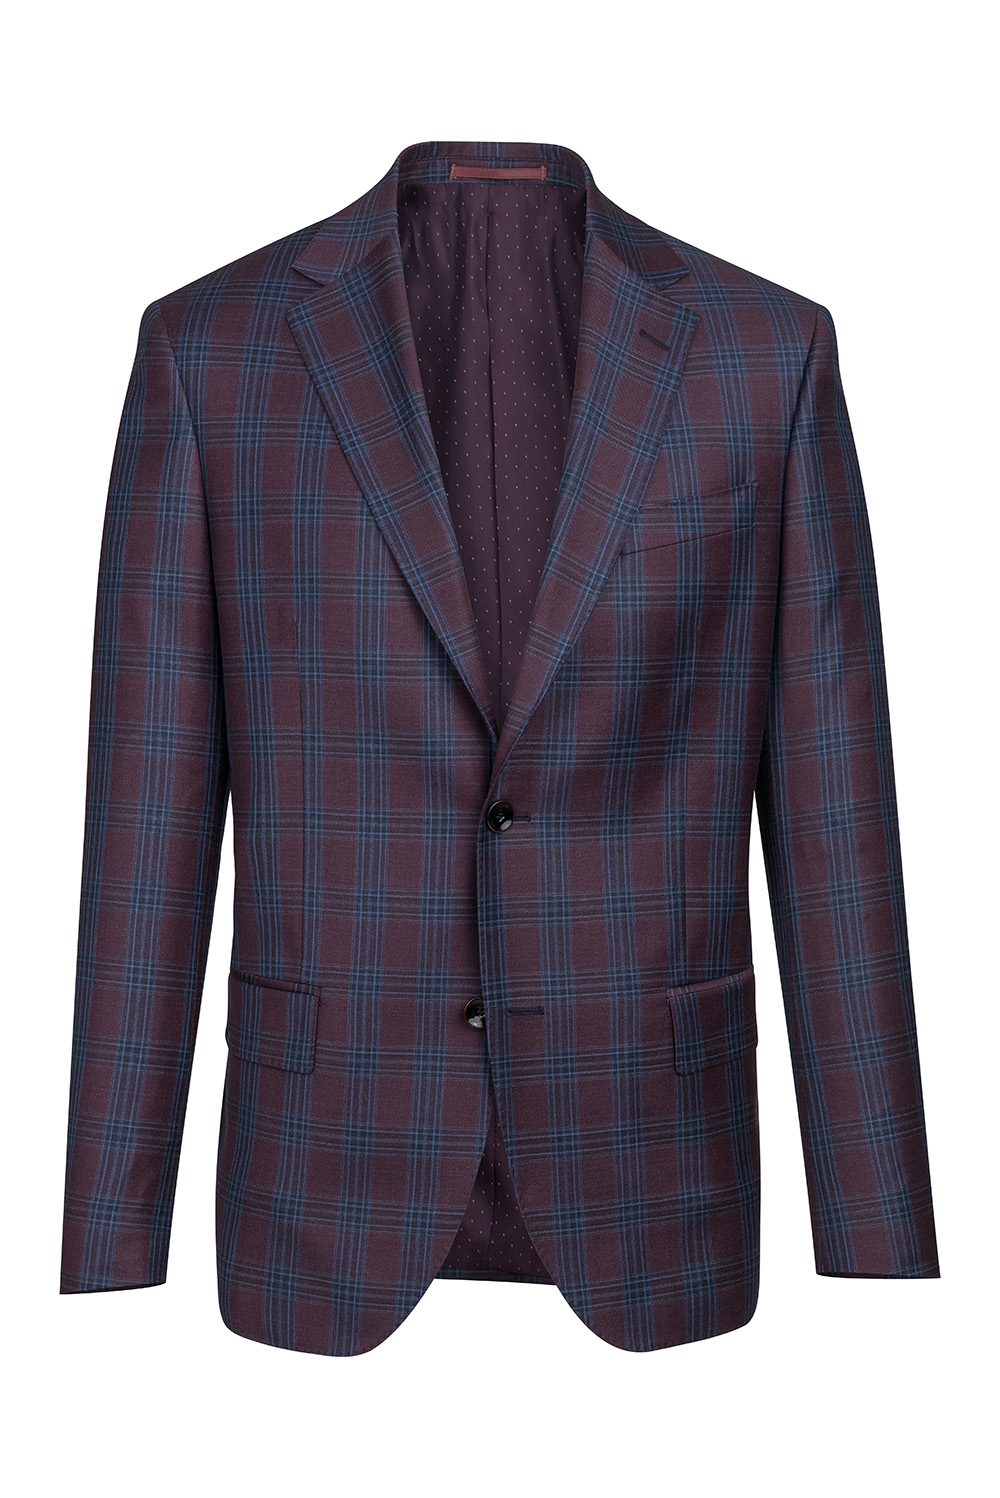 Burgundy Check Blazer 0